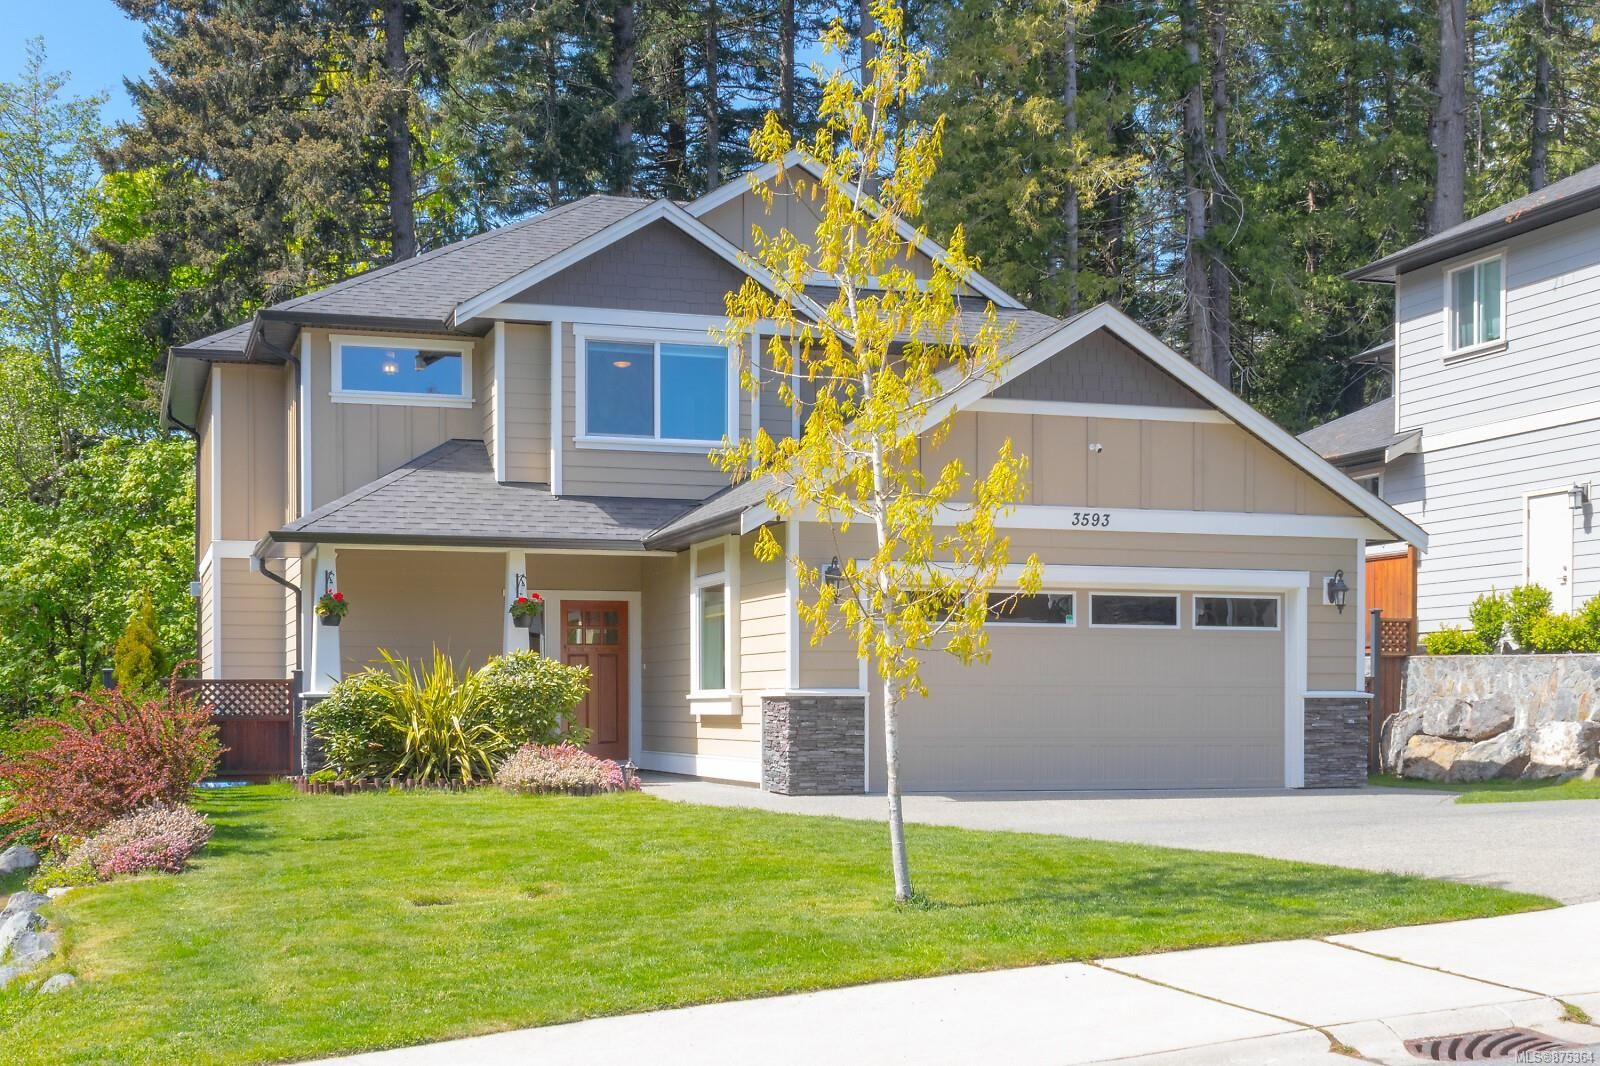 Main Photo: 3593 Whimfield Terr in : La Olympic View House for sale (Langford)  : MLS®# 875364